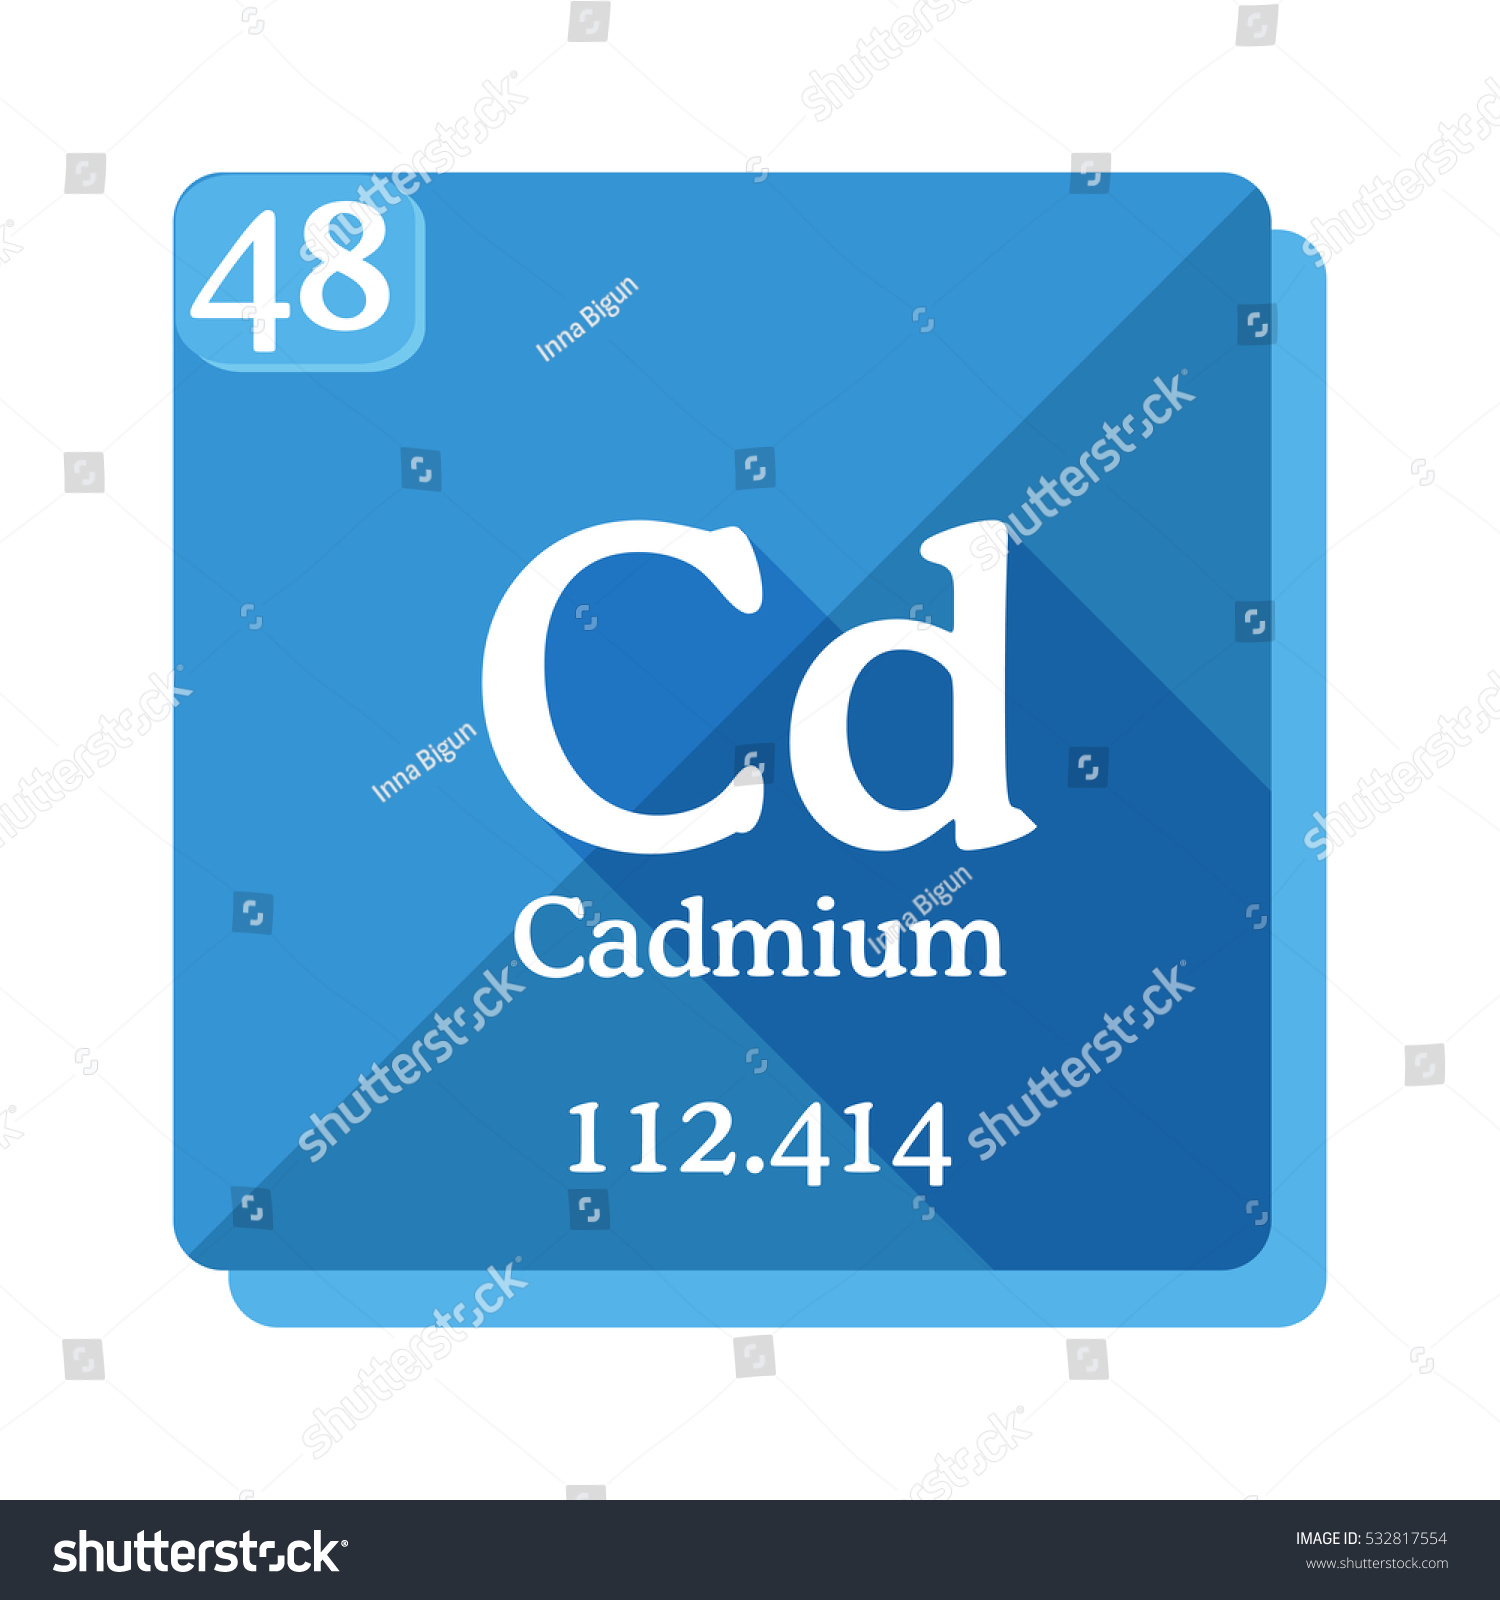 Cadmium Cd Element Periodic Table Flat Stock Vector ...